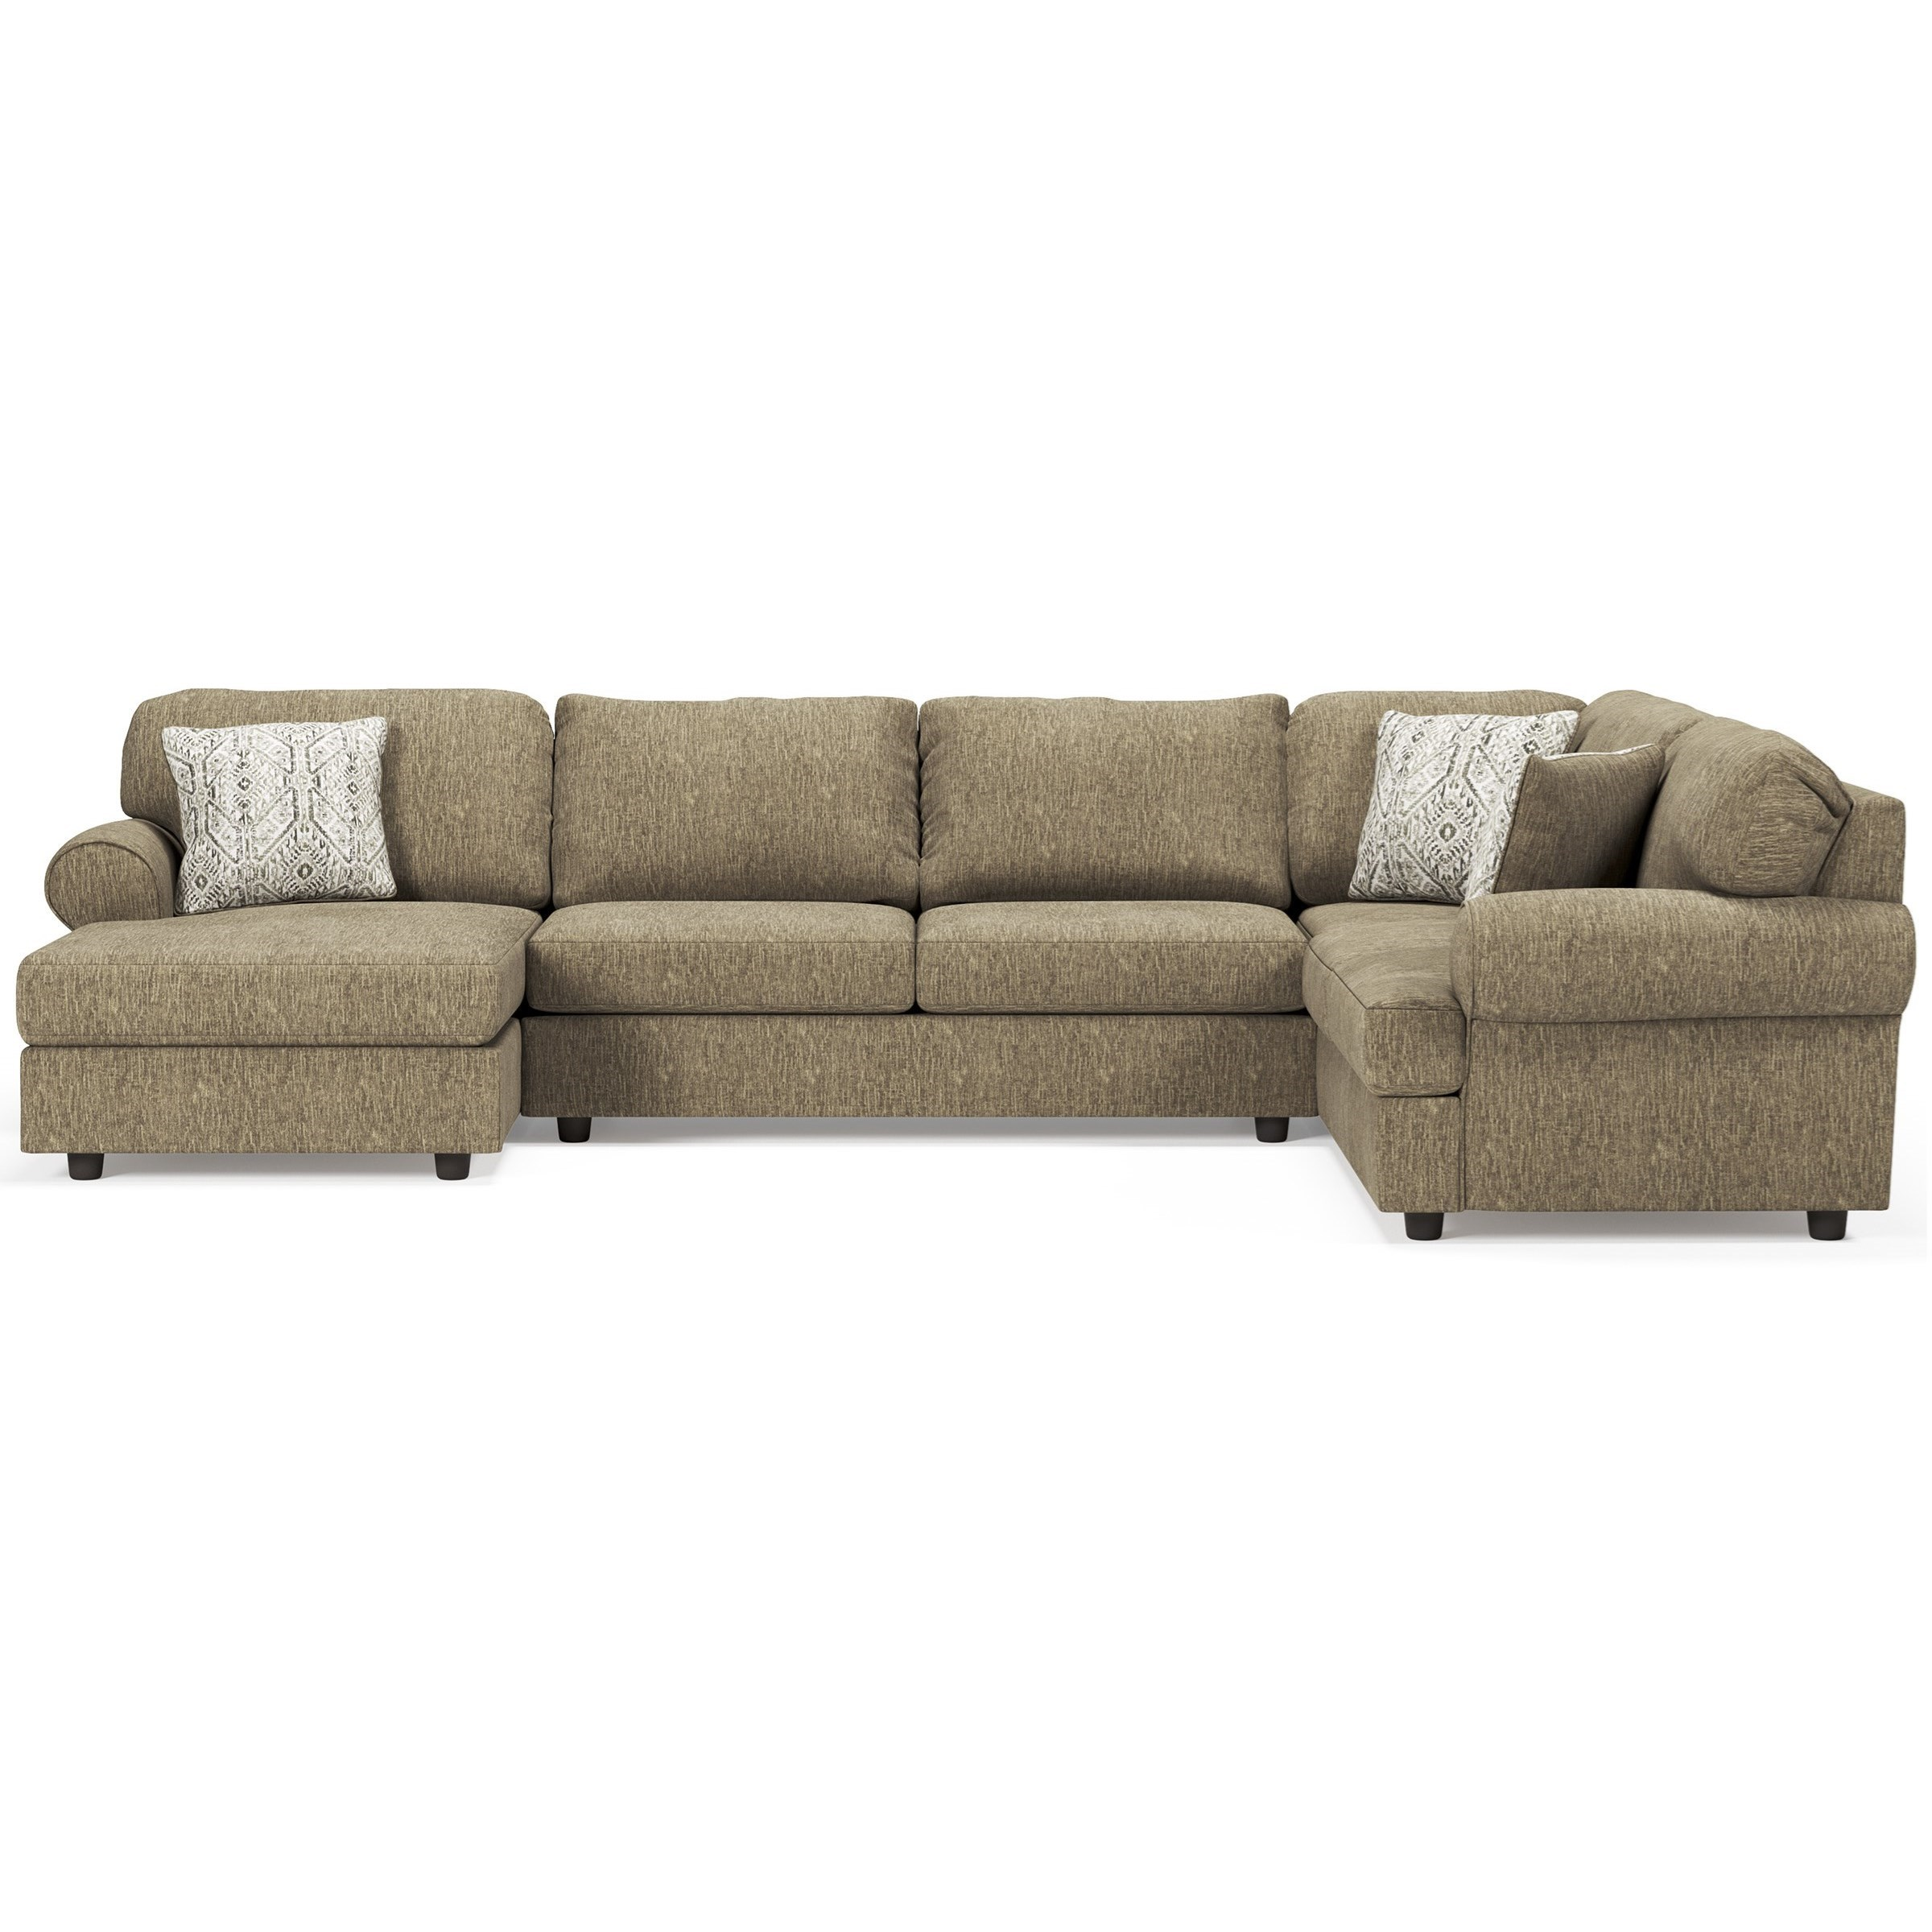 Hoylake 3-Piece Sectional with Chaise by Ashley (Signature Design) at Johnny Janosik